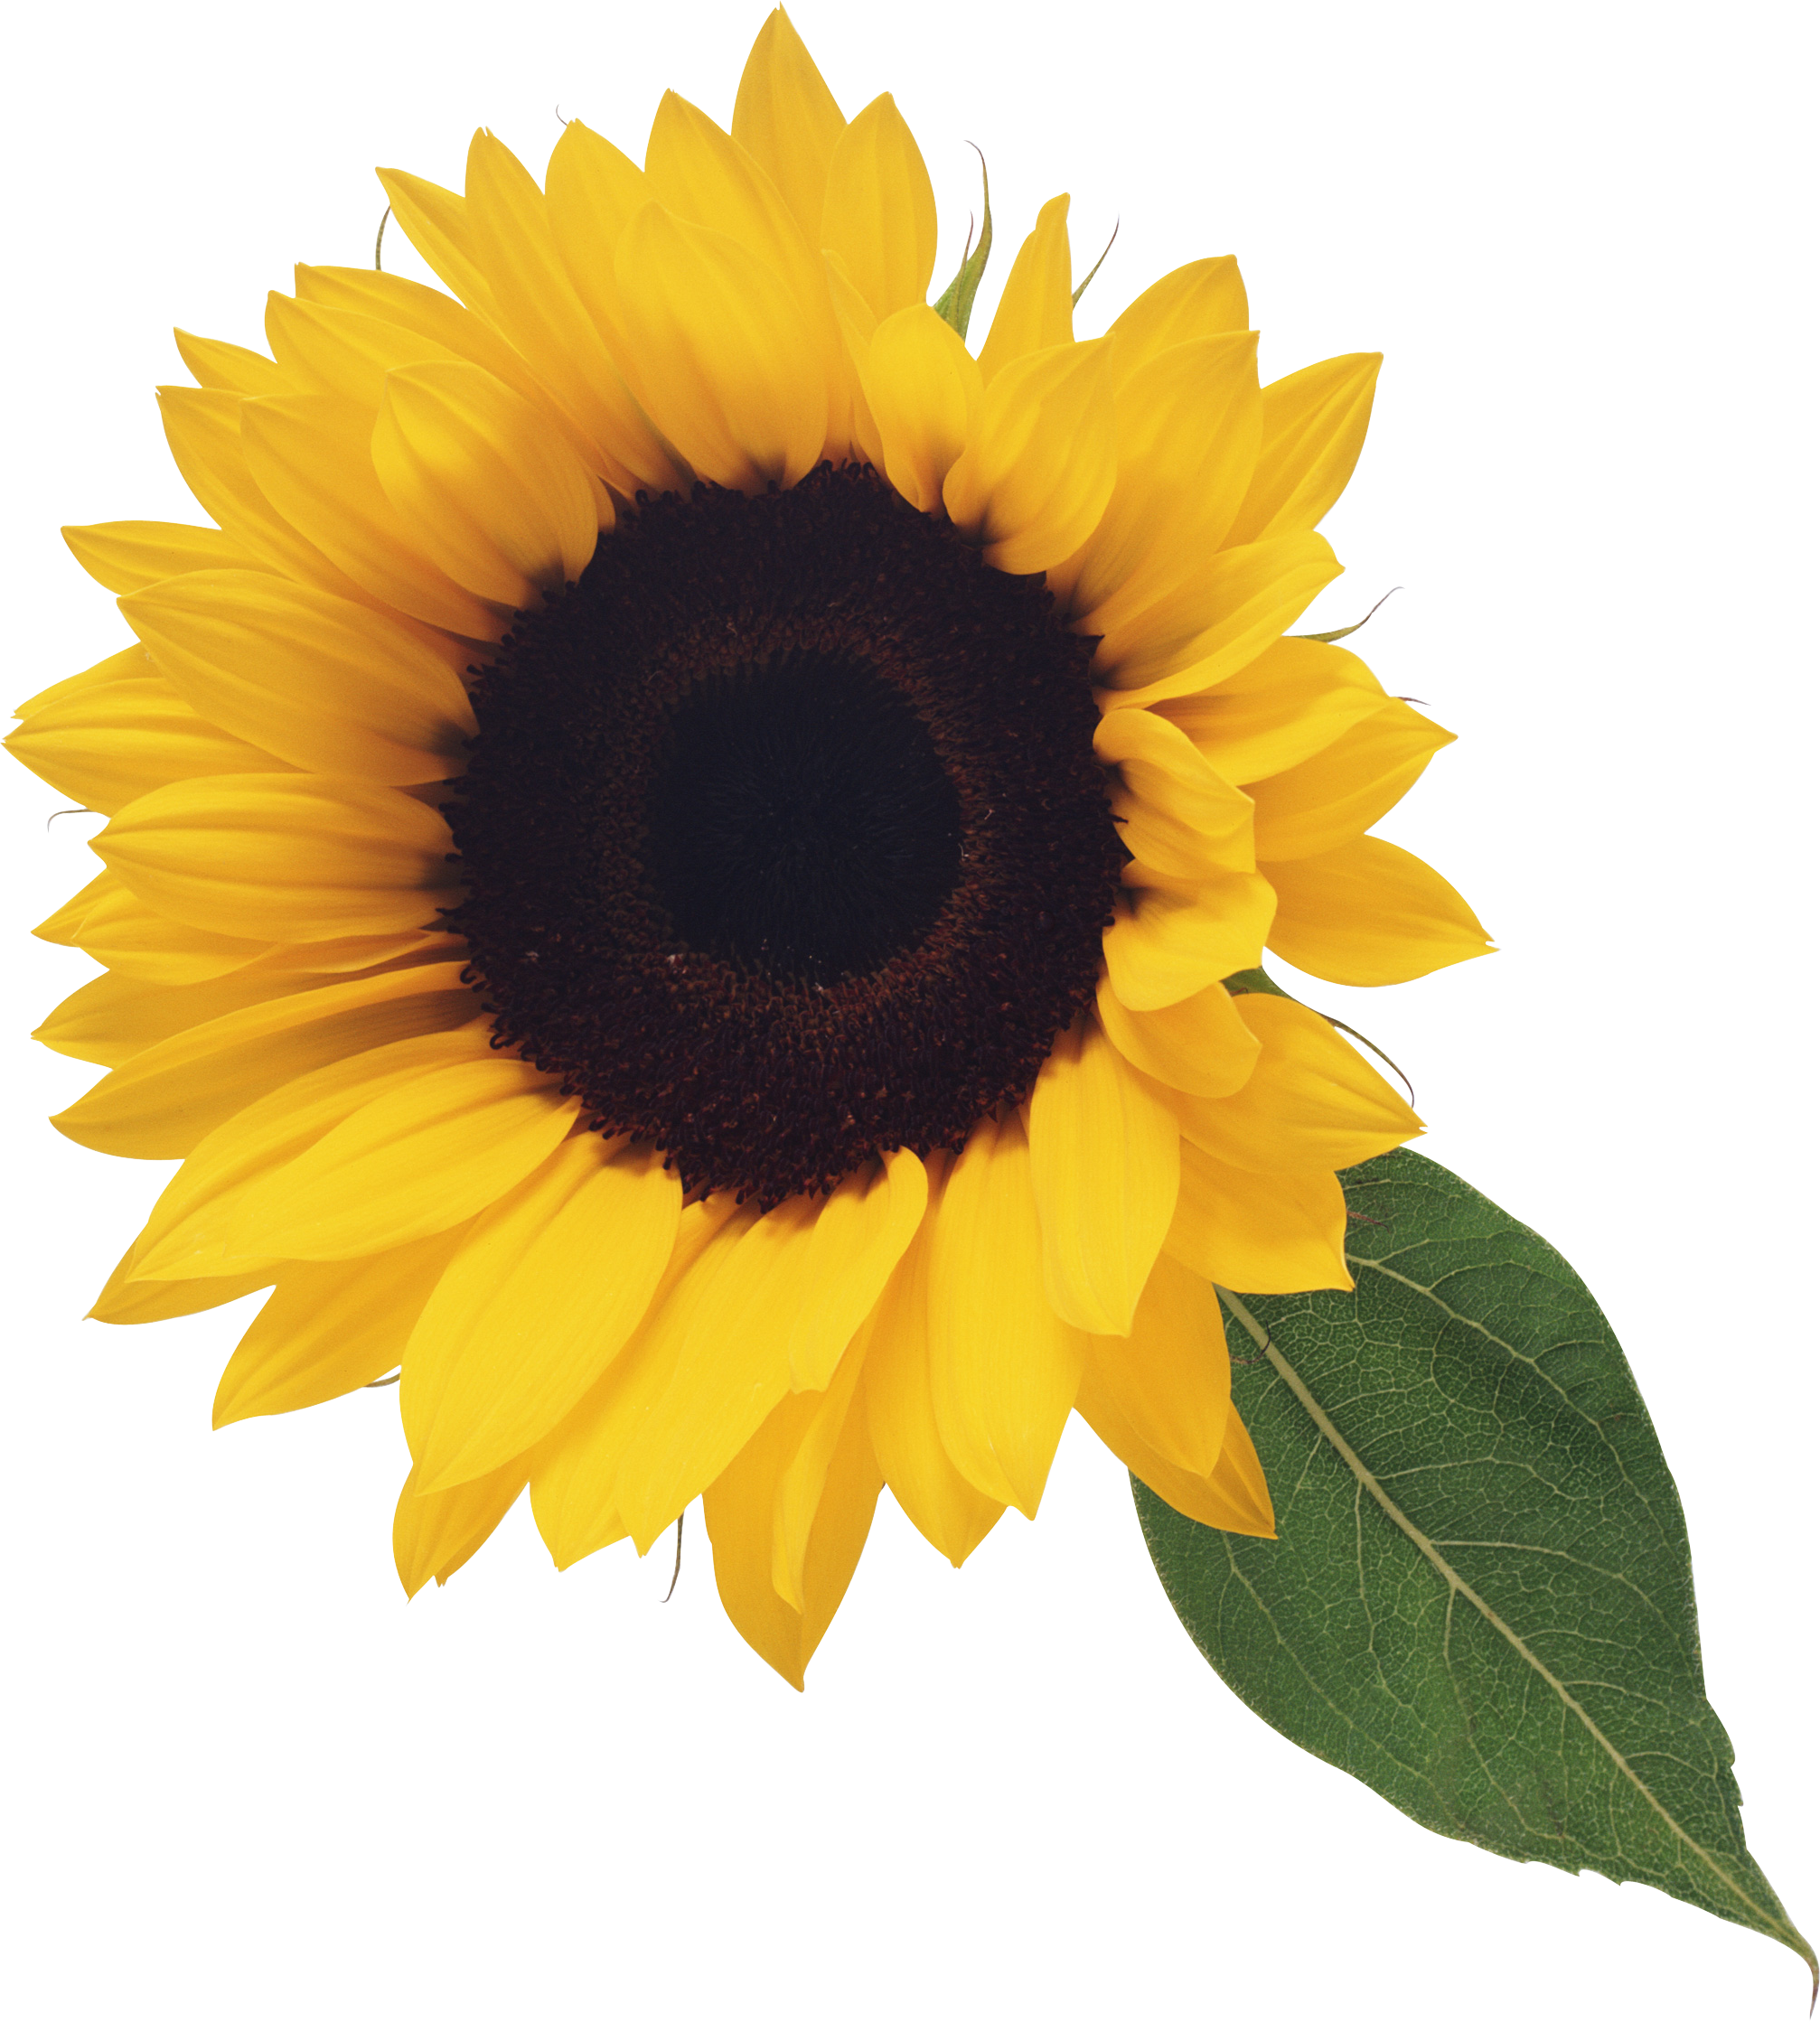 Sunflower png real. Transparent image web icons